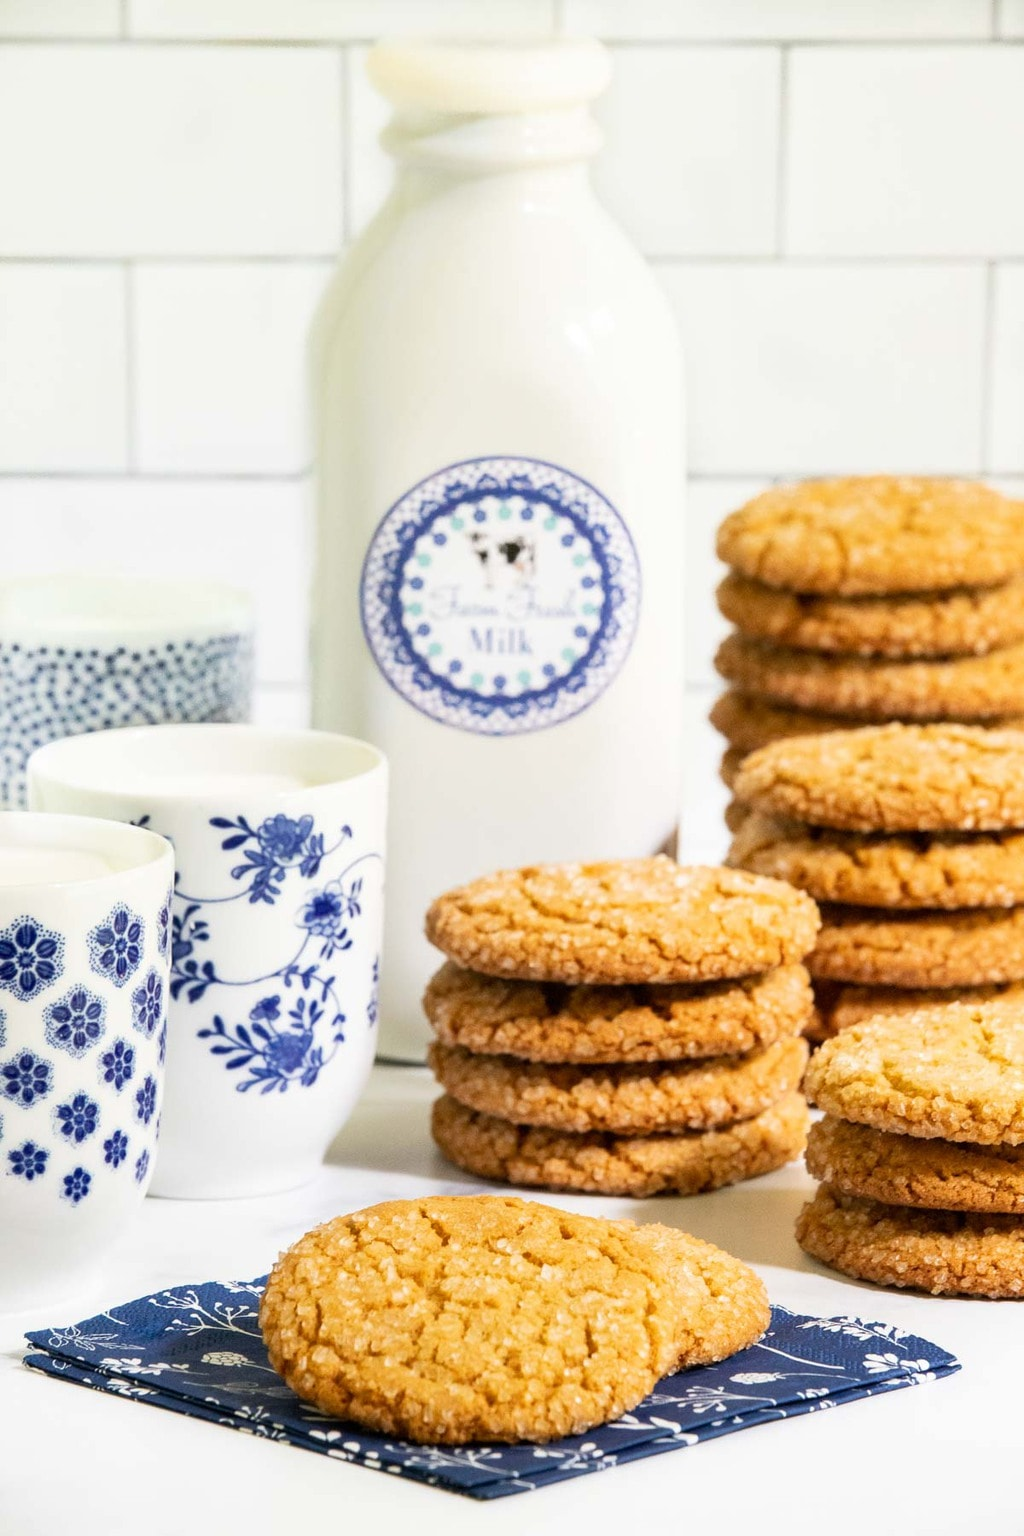 Vertical picture of Crinkly Crackly Peanut Butter cookies stacked with a jar and glasses of milk